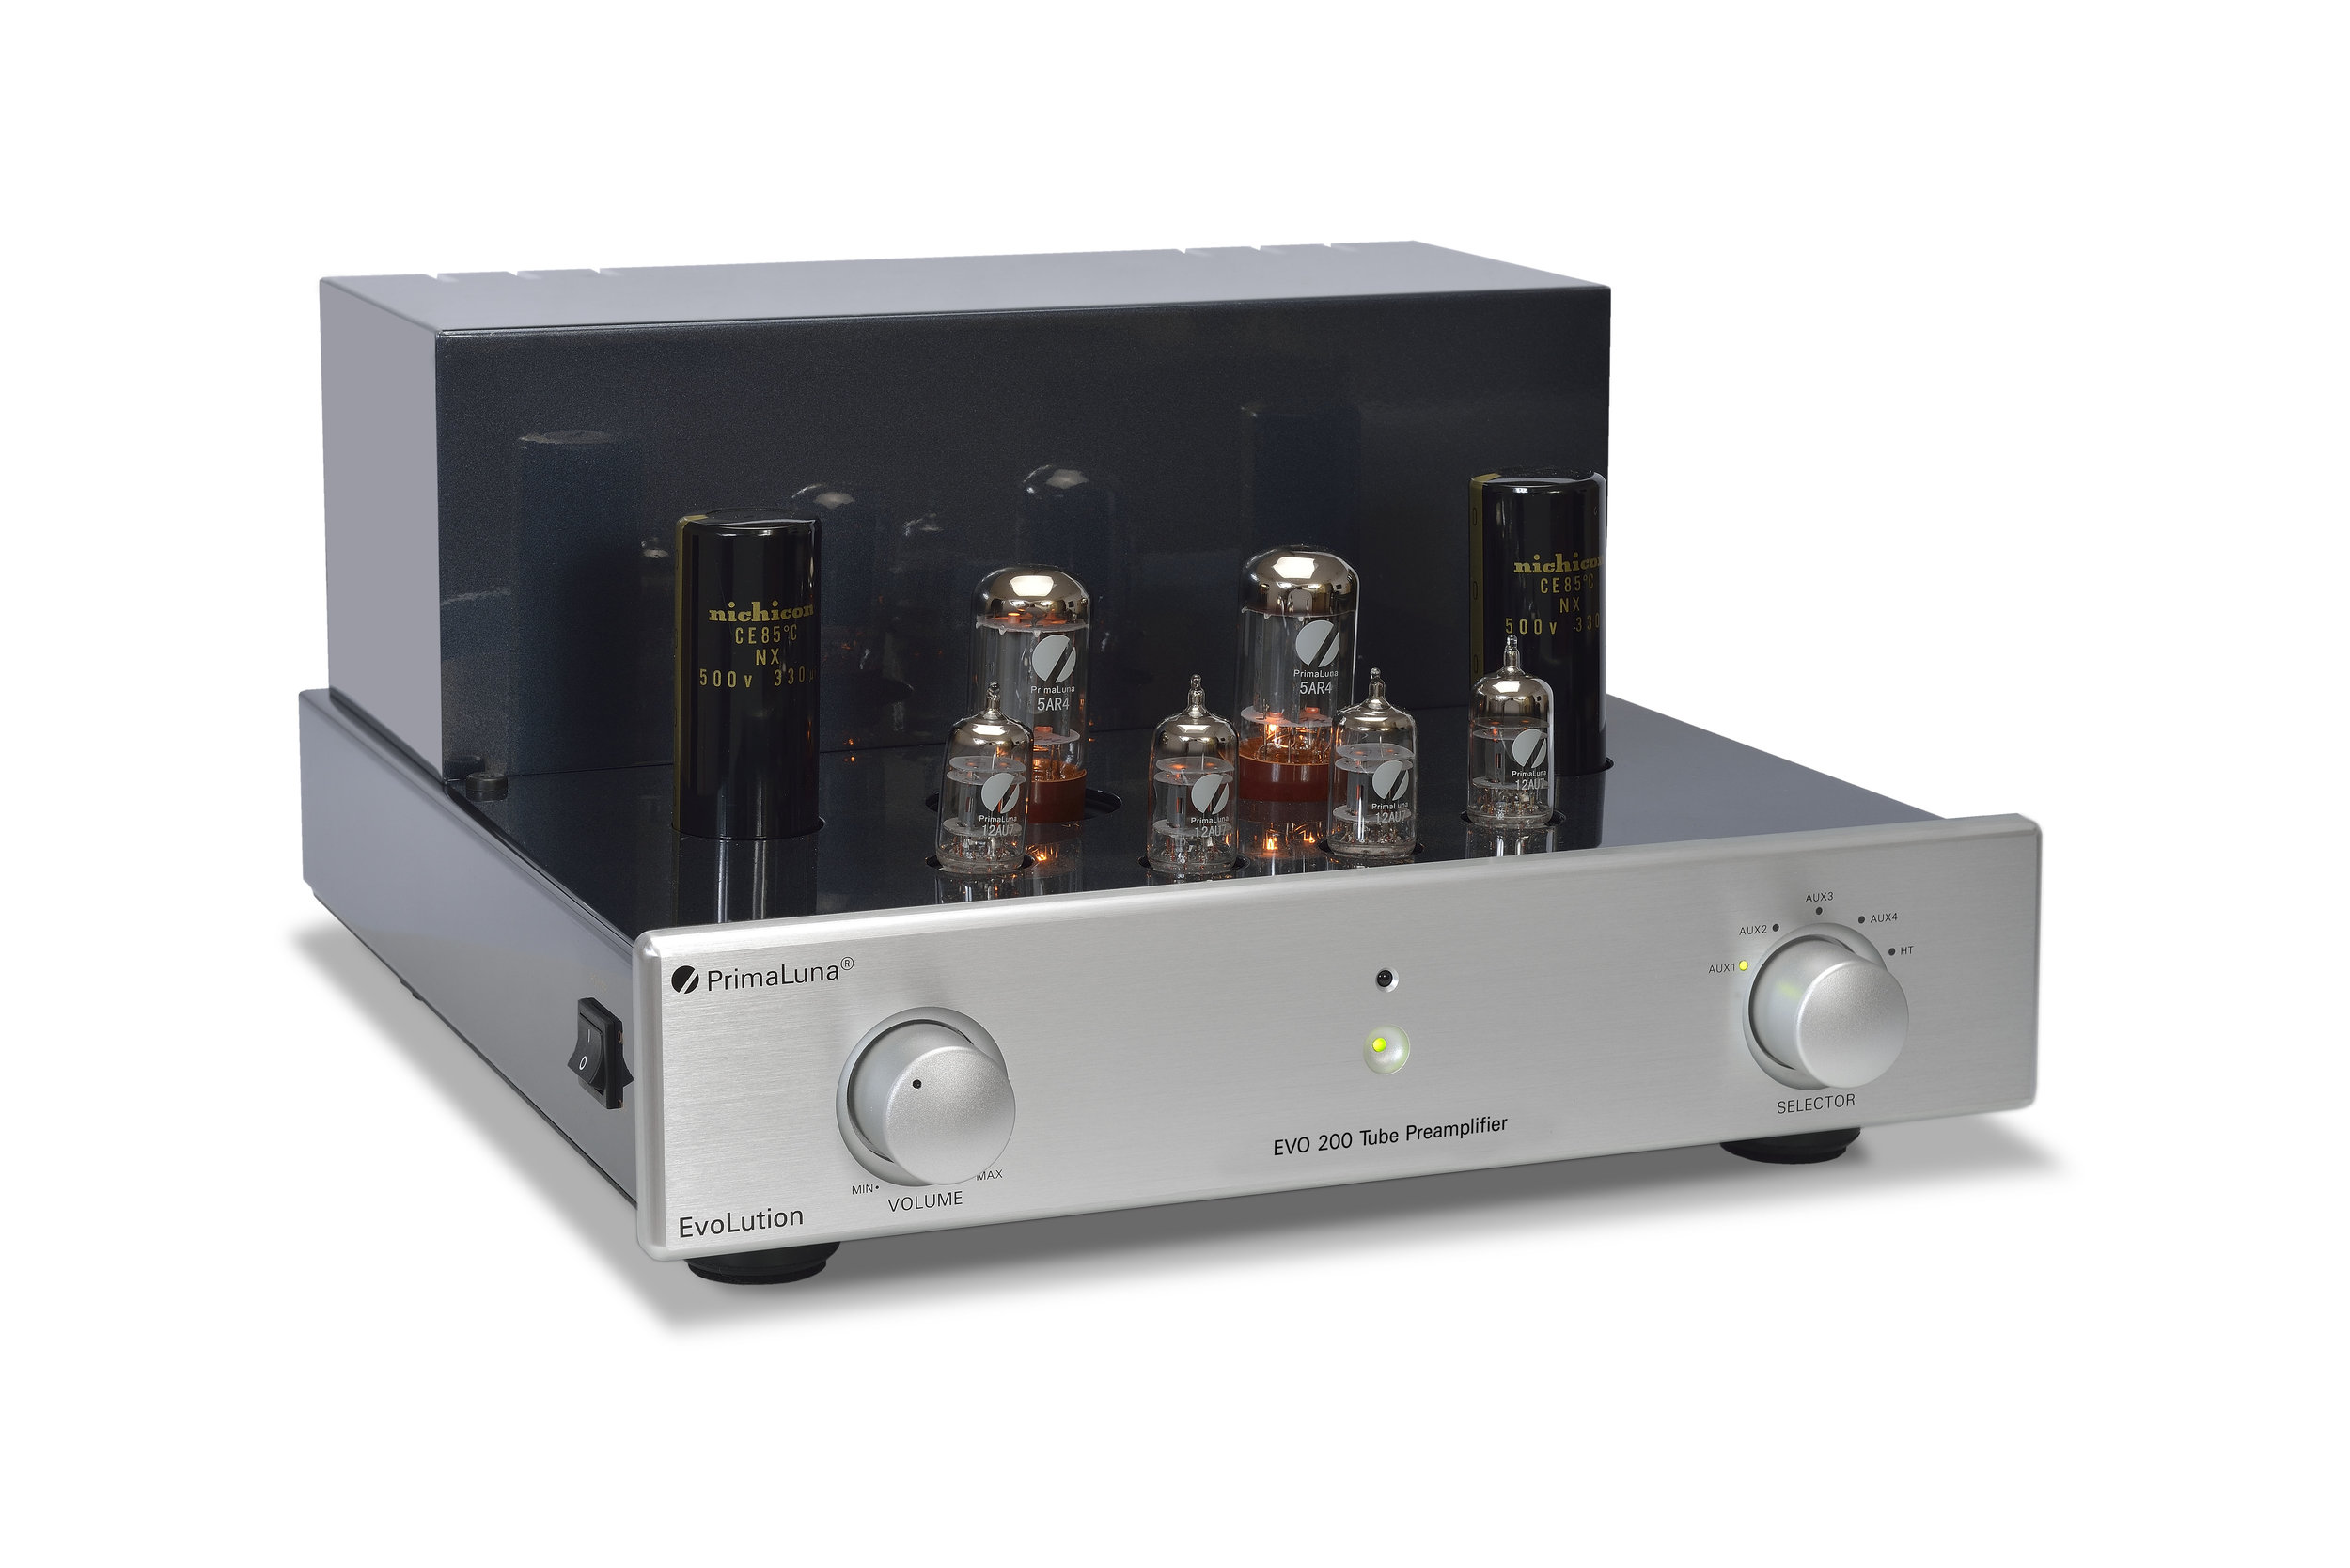 084b - PrimaLuna Evo 200 Tube Preamplifier - silver - slanted - without cage - white background.jpg